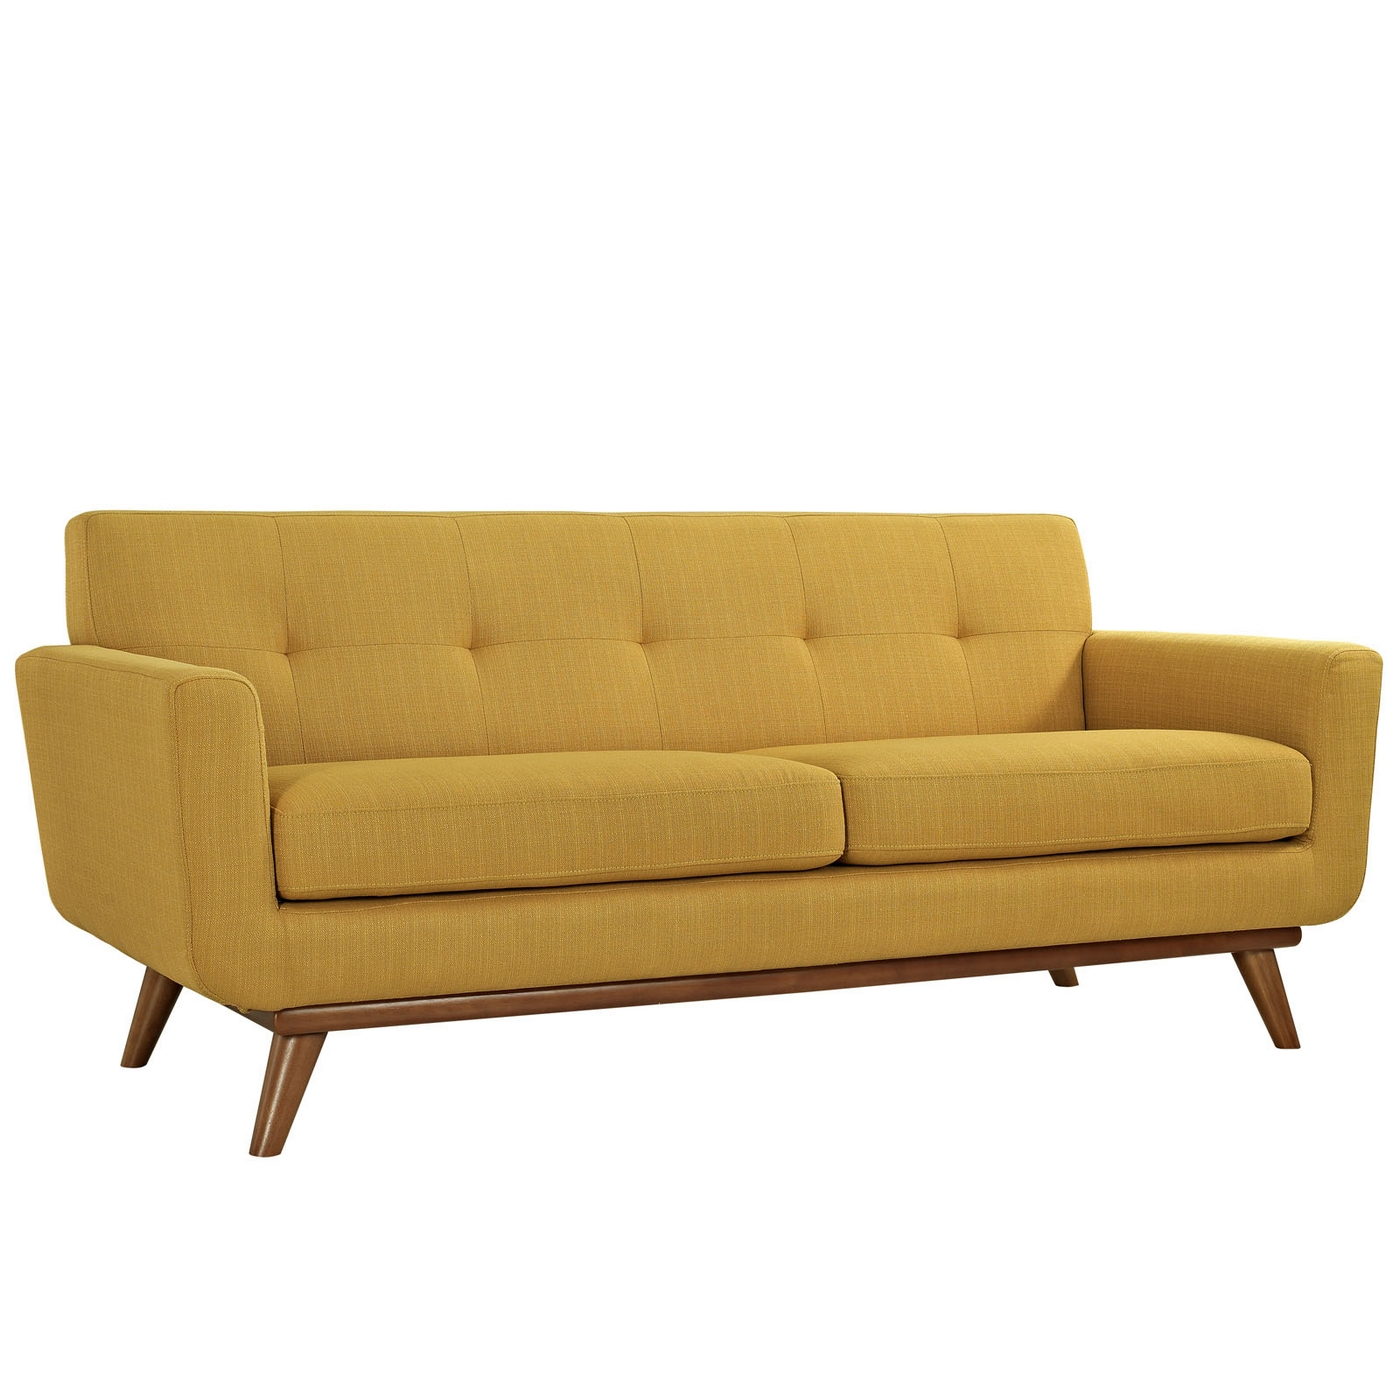 Mid Century Modern Engage Contemporary Loveseat With Wooden Legs Citrus